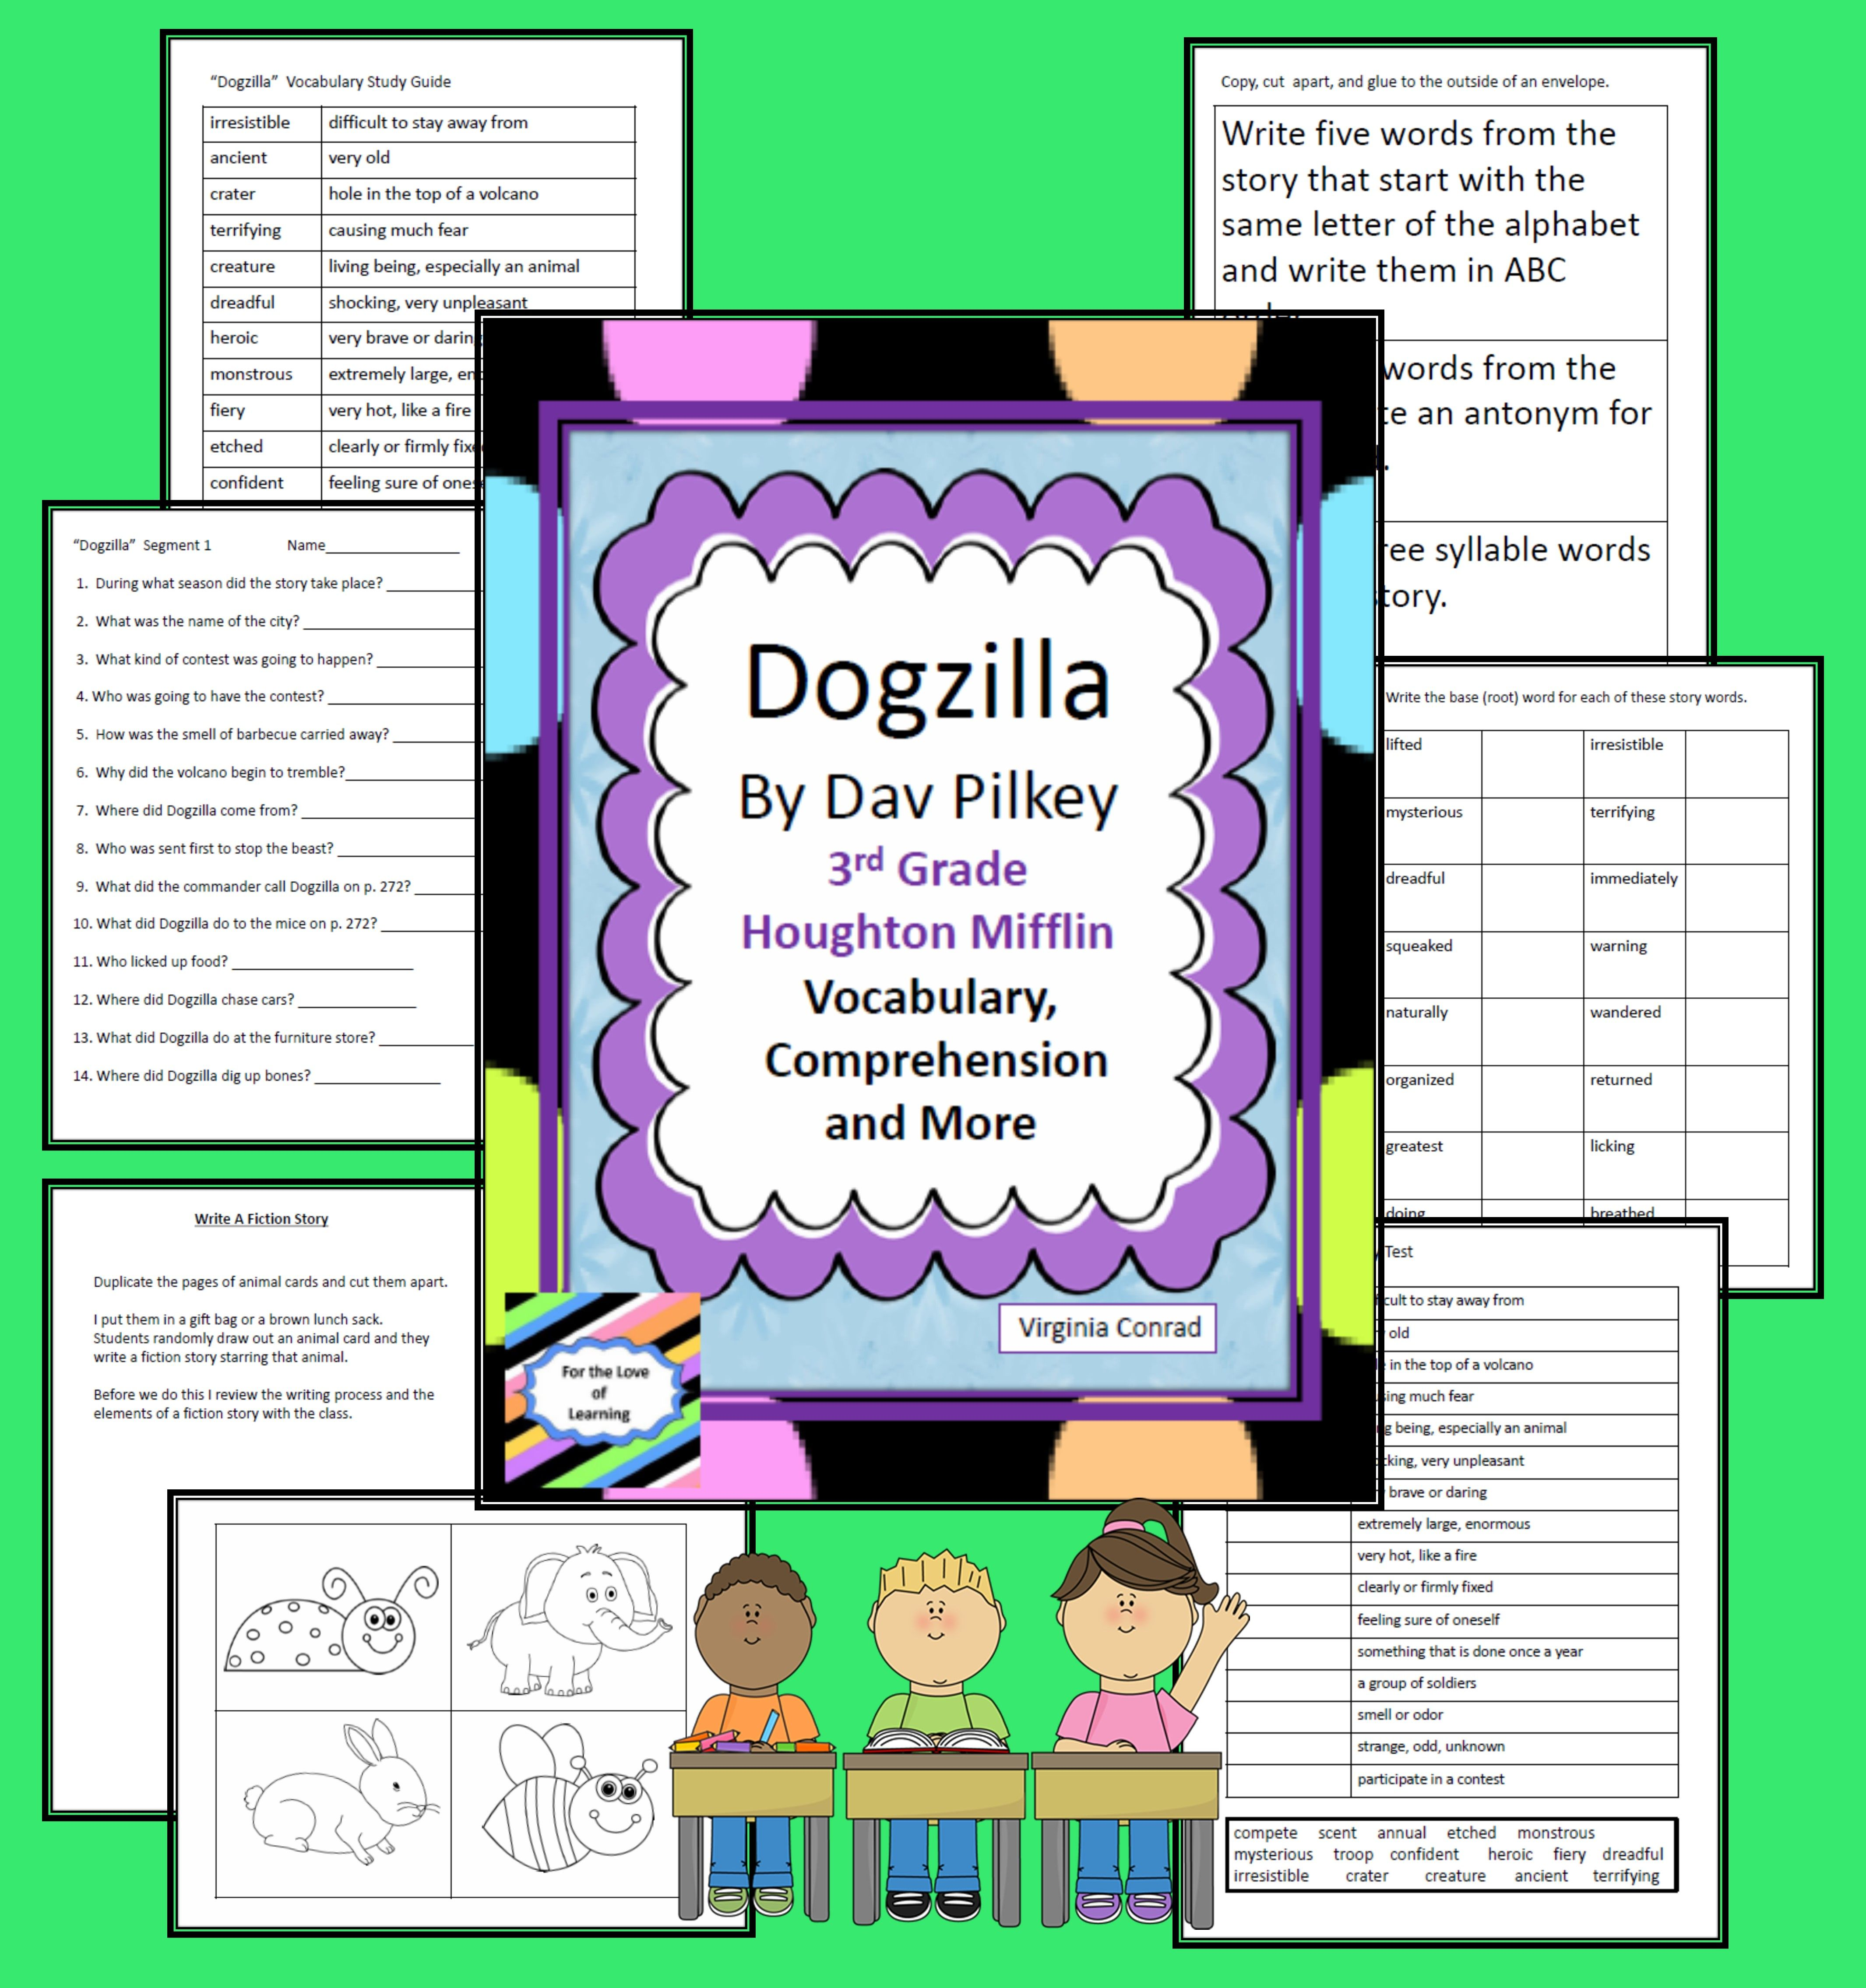 Supplemental Goodies For Comprehension And Vocabulary From Dogzilla In The Houghton Mifflin Third Grade Basal Vocabulary Teaching Third Grade Comprehension [ 4541 x 4262 Pixel ]